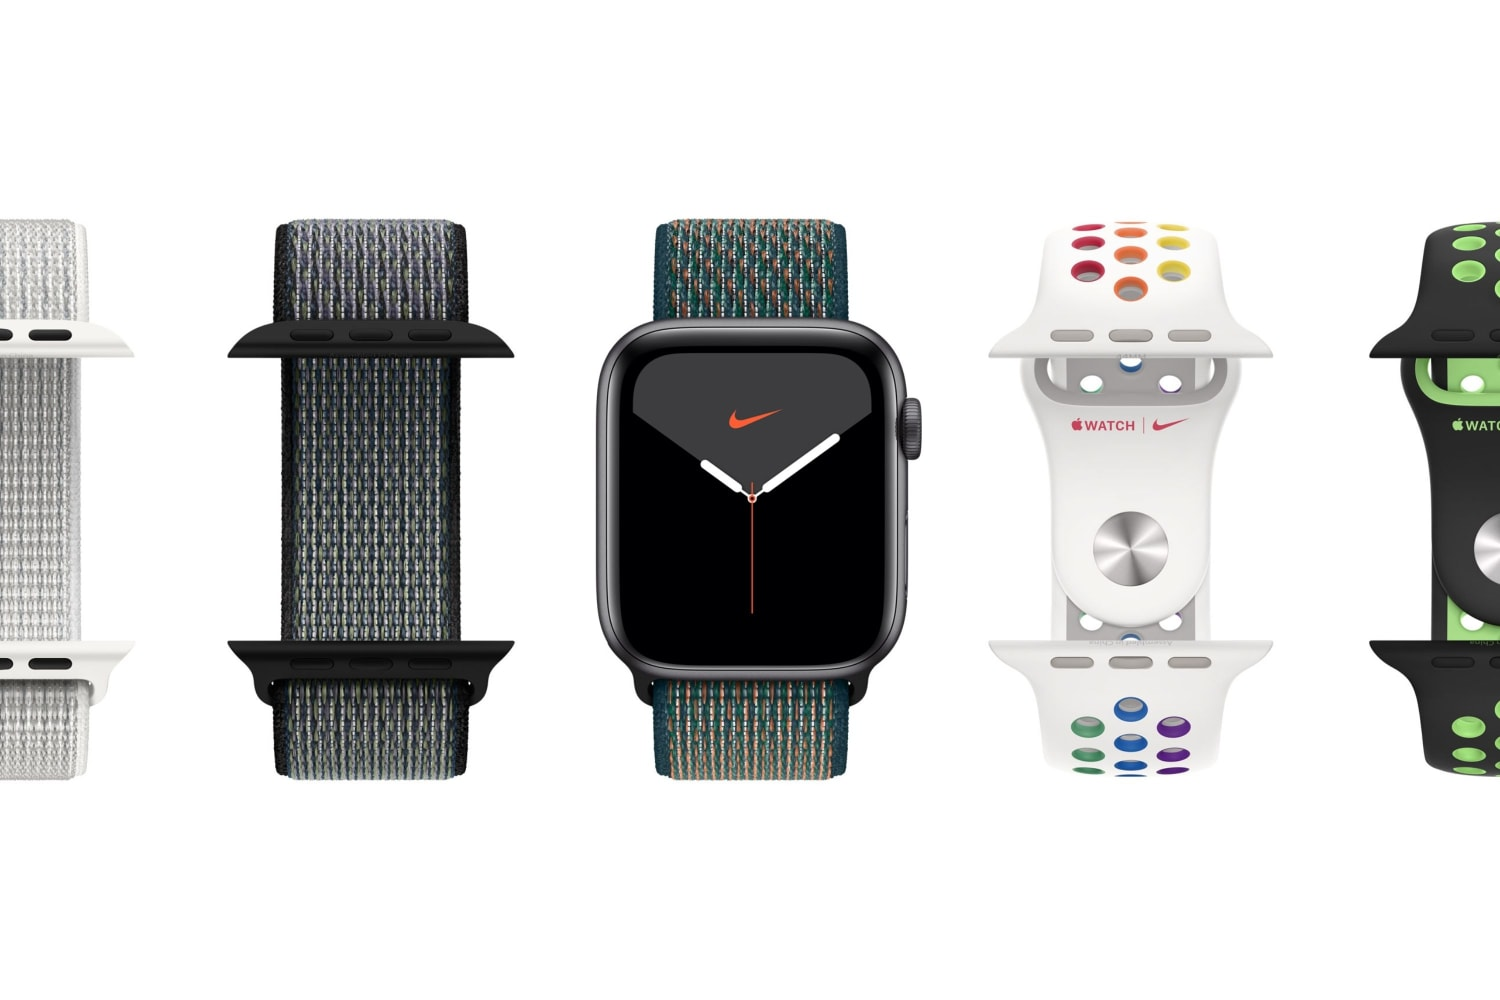 latest-cheaper-apple-watch-4-next-week-and-apple-card-goes-international-20200911-1